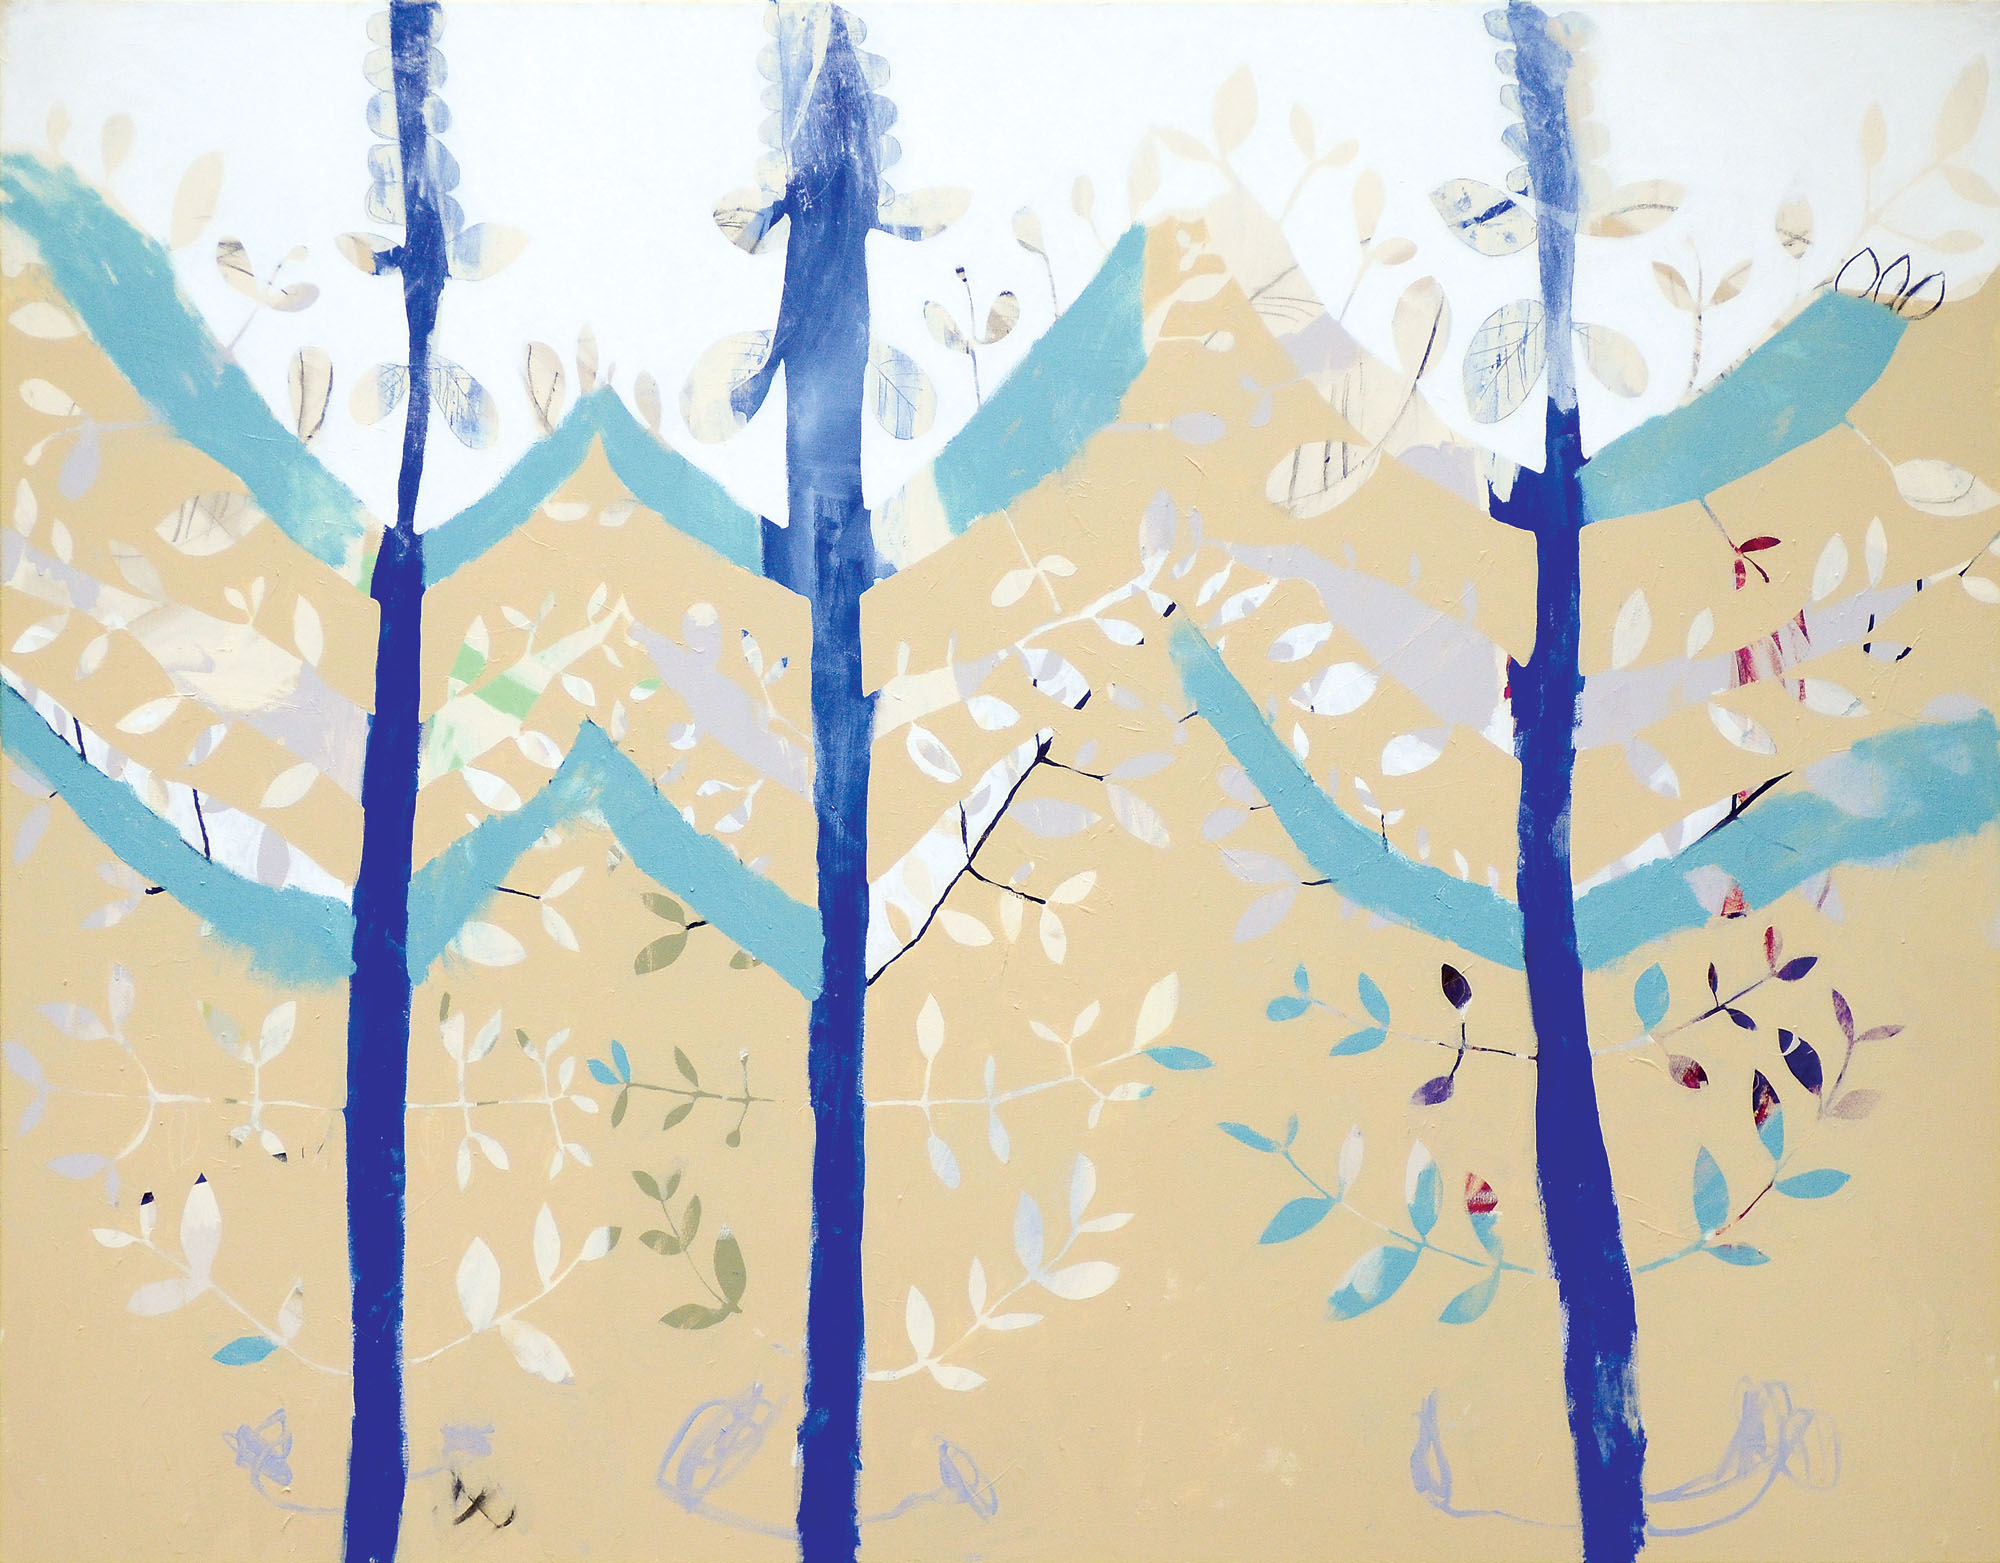 Holy Basil 2014, acrylic and charcoal on cotton canvas, 167 x 213cm